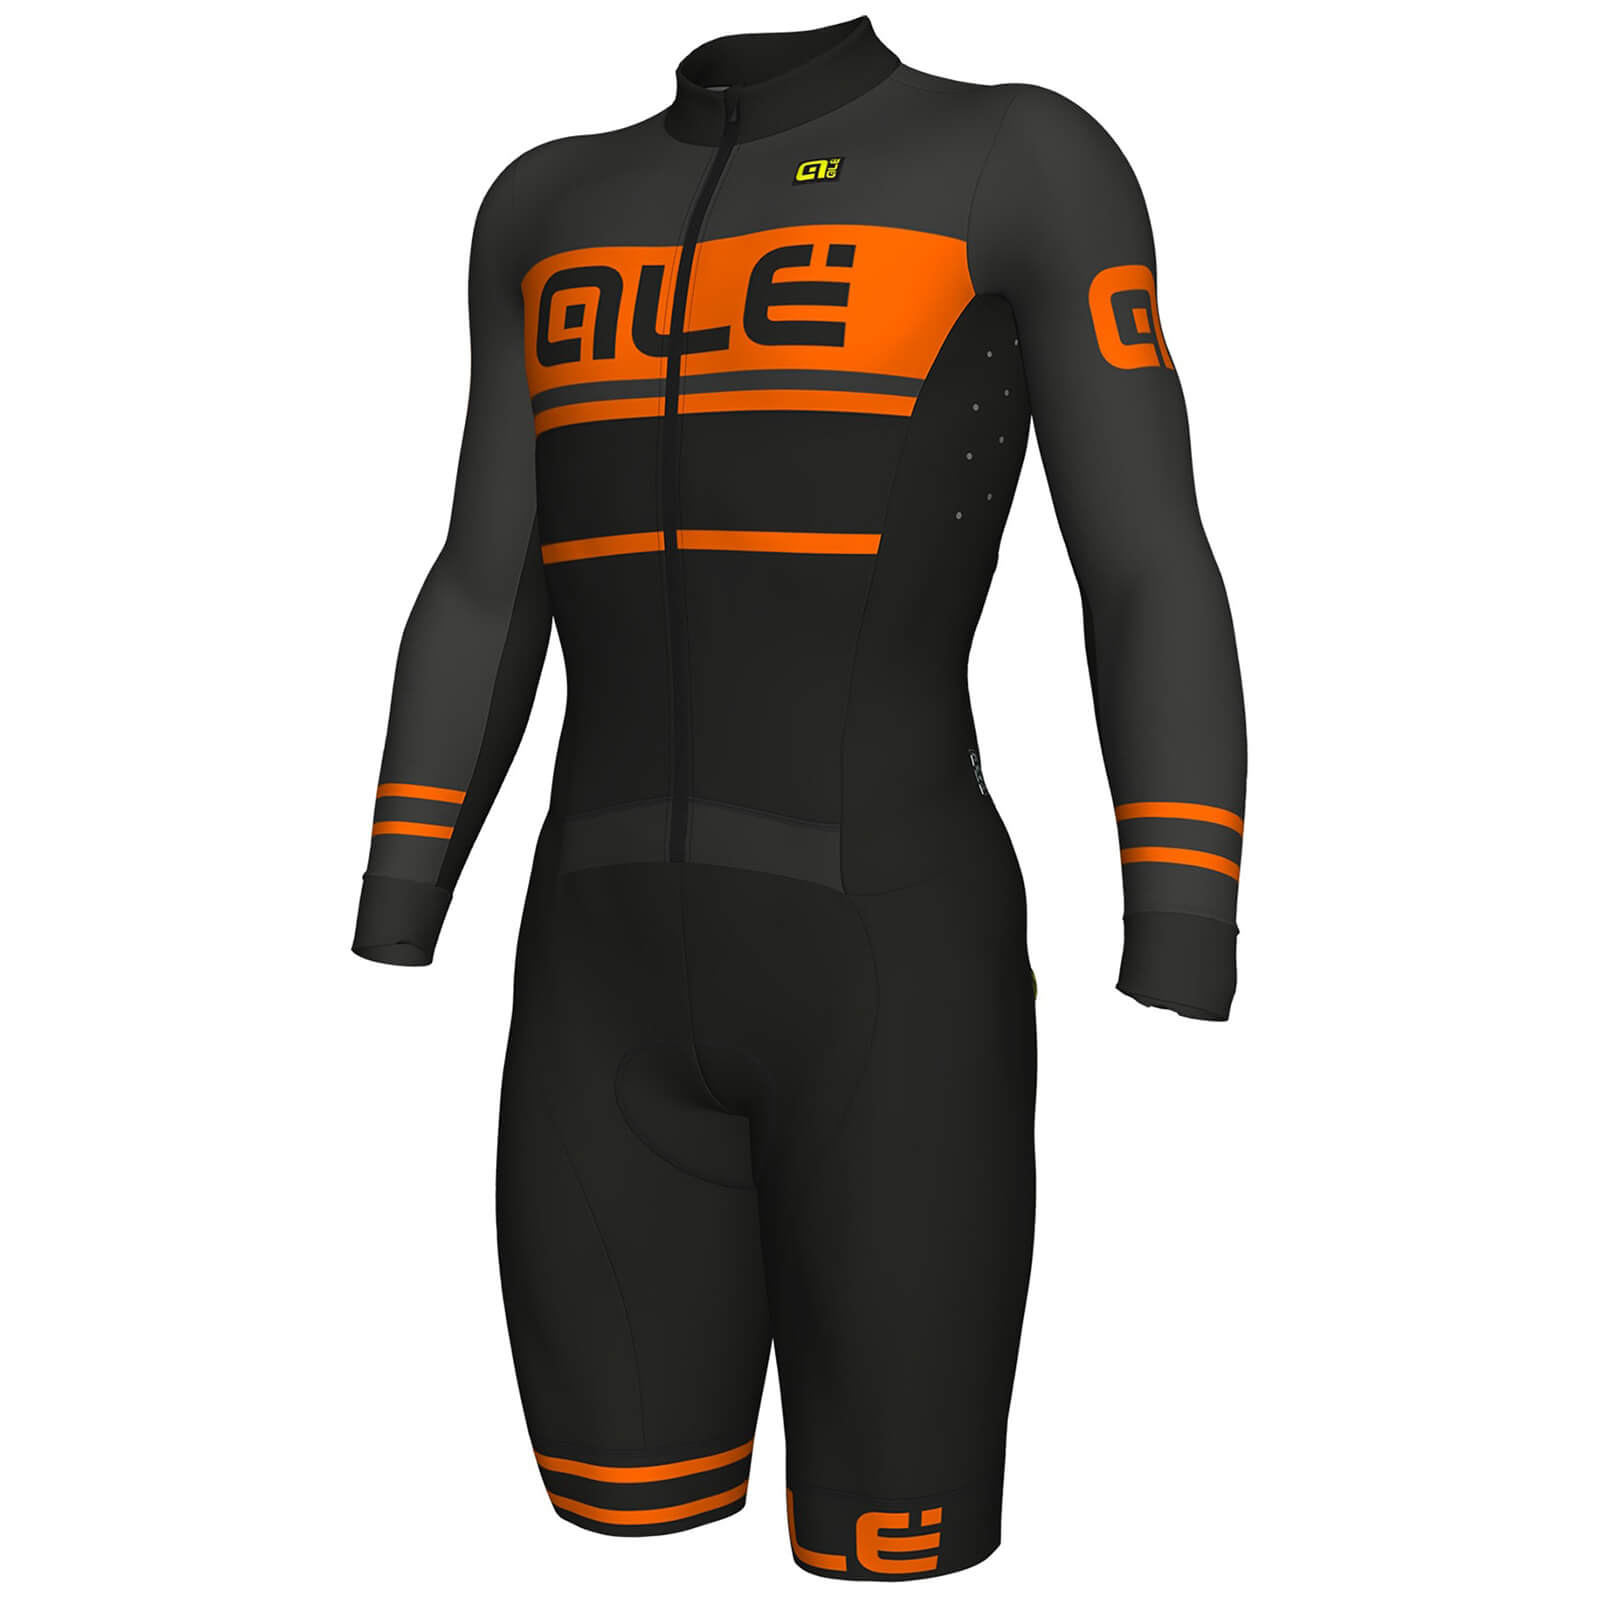 Alé R-EV1 Fango Cyclocross Skinsuit - Black/Orange